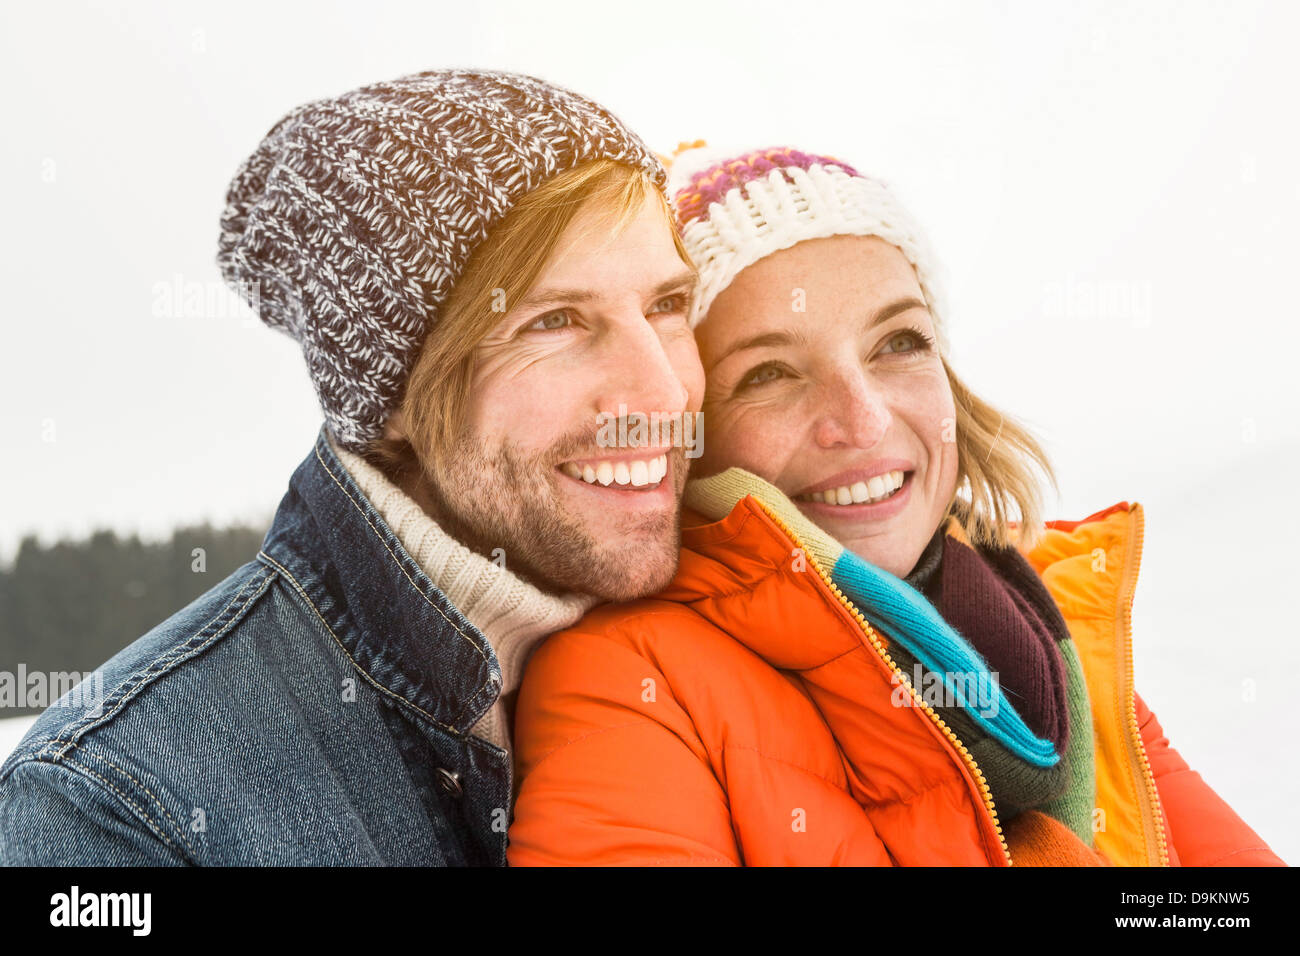 Portrait of couple wearing knit hats - Stock Image